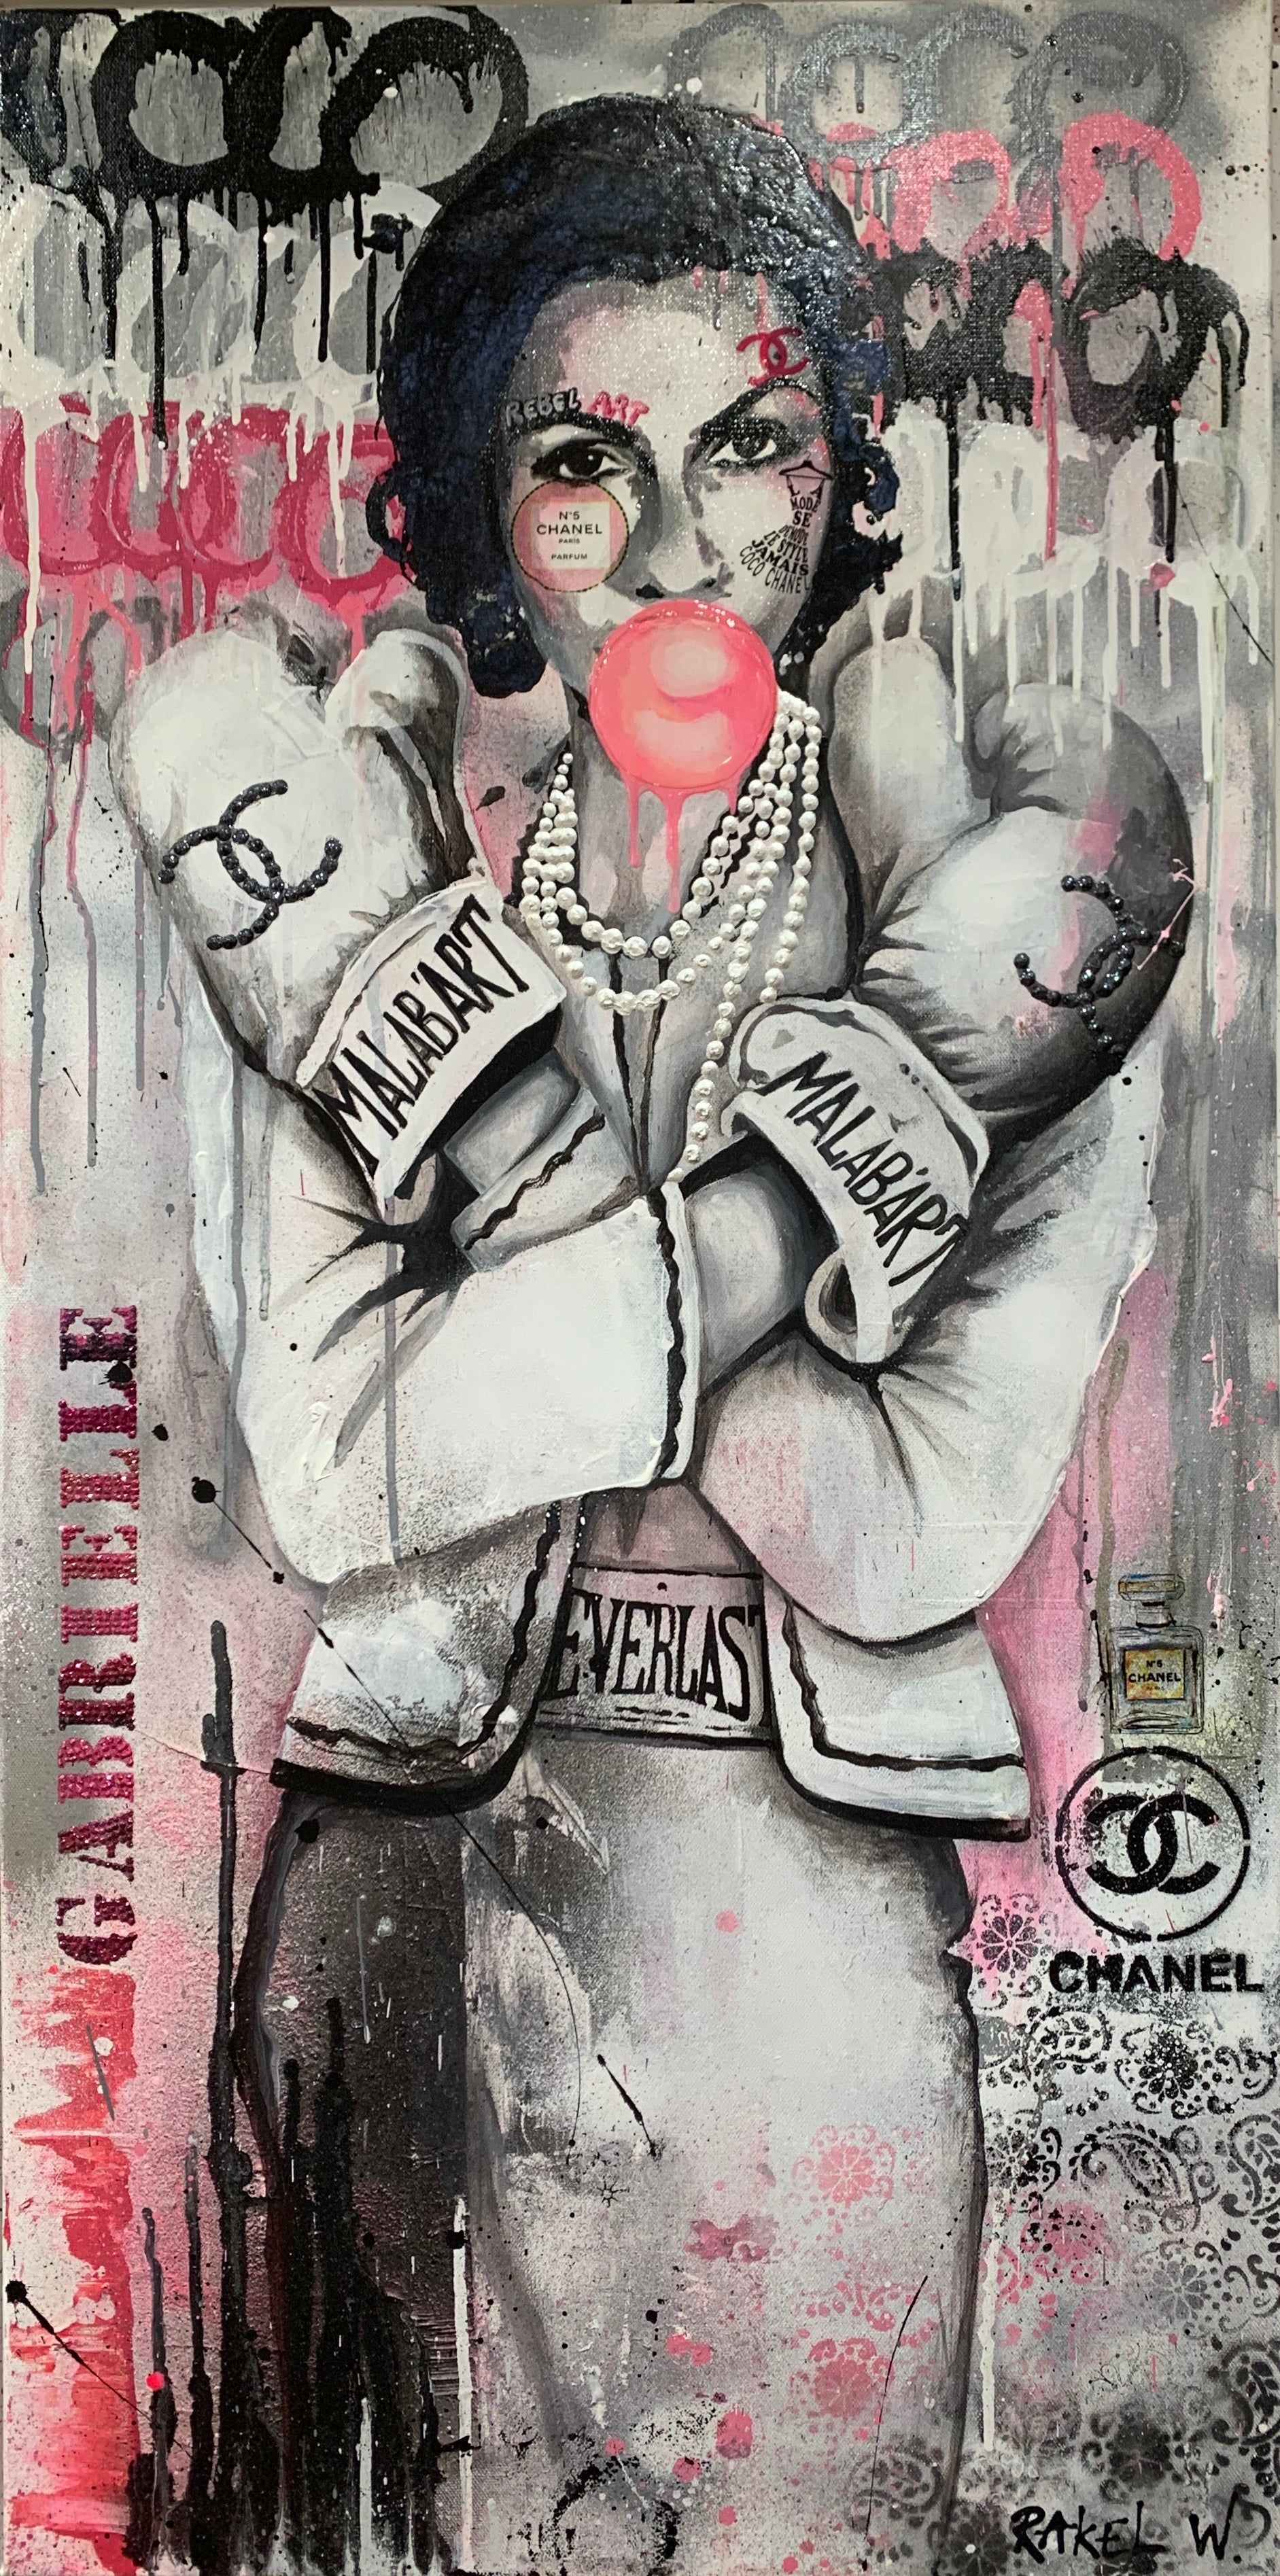 Malab'Art Everlast Chanel